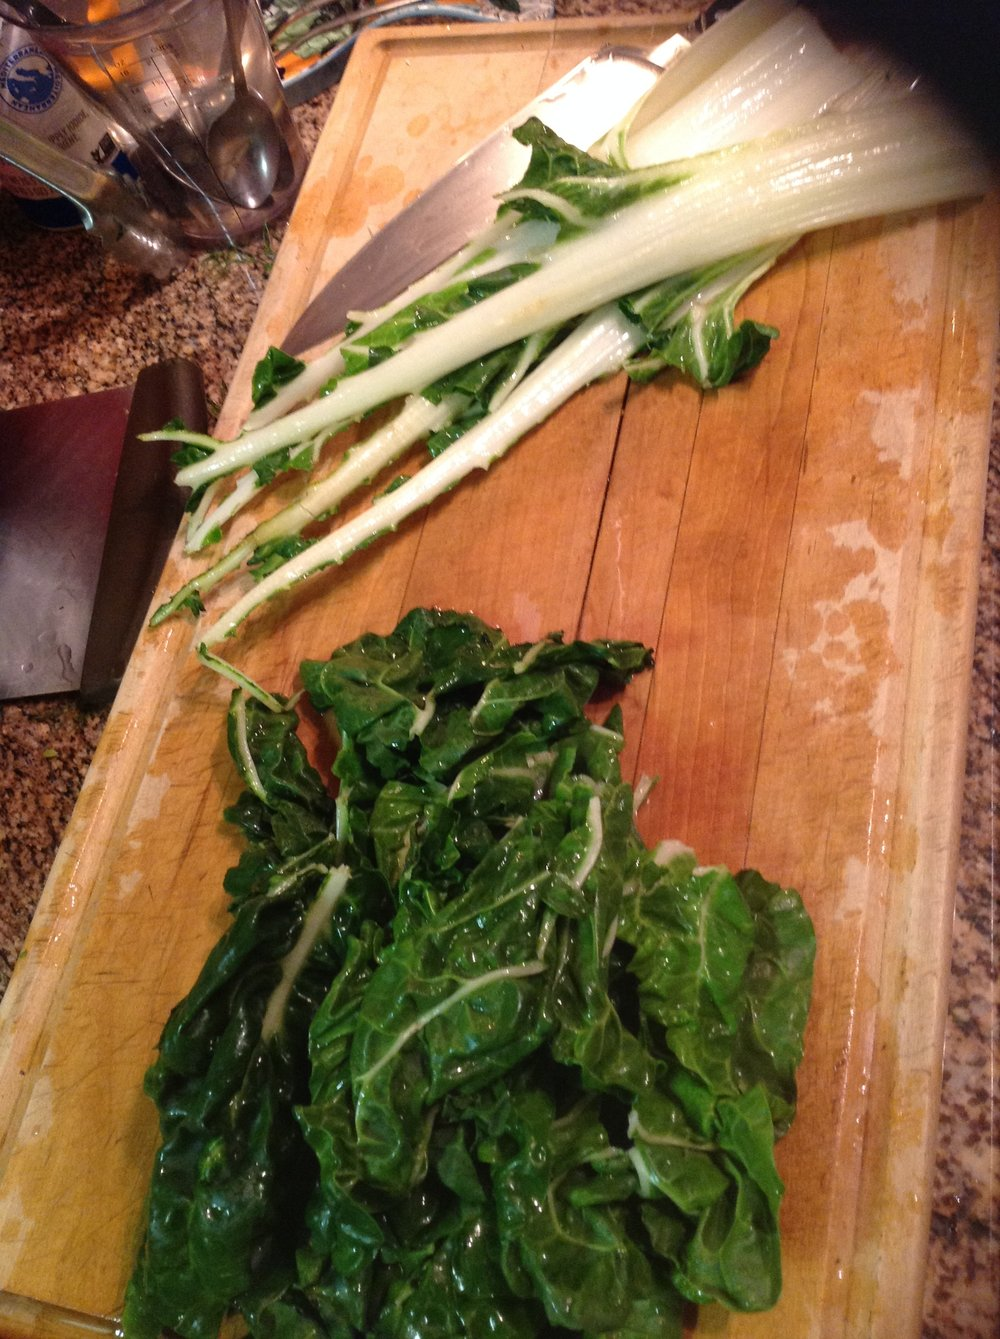 Chef's Tip - Use both the stems and greens of hearty, healthy Swiss Chard for crunchy texture and sweet flavor